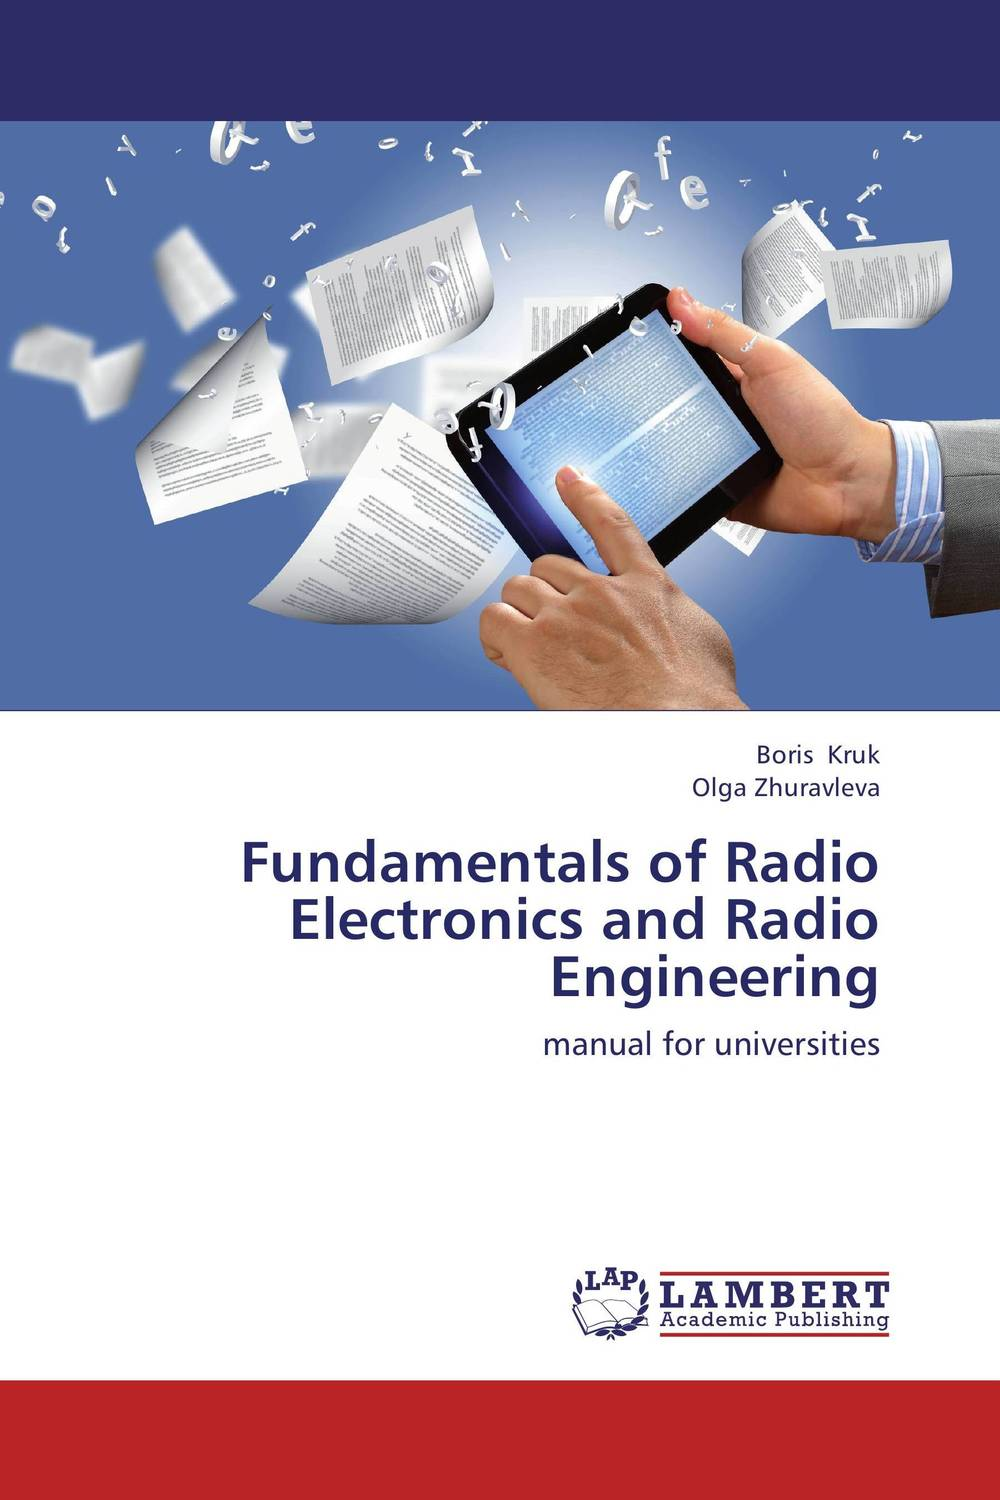 Fundamentals of Radio Electronics and Radio Engineering fundamentals of physics extended 9th edition international student version with wileyplus set